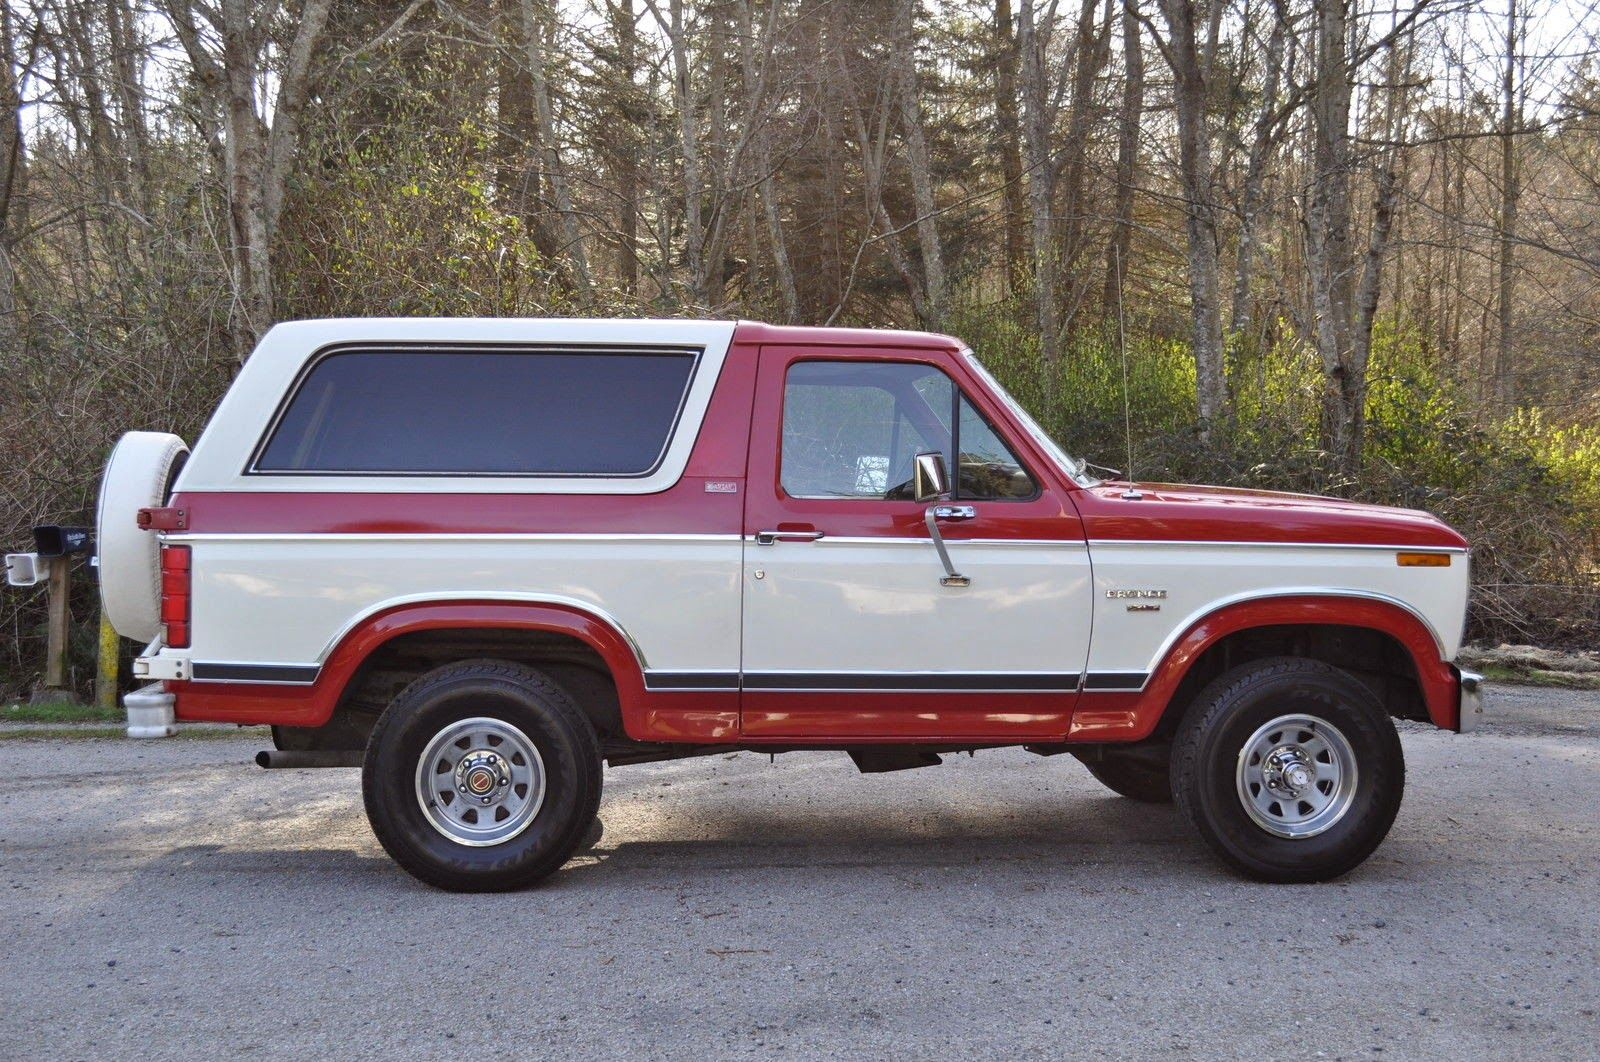 1982 Ford Bronco Xlt Lariat 4x4 2 Door Suv Ford Bronco Bronco